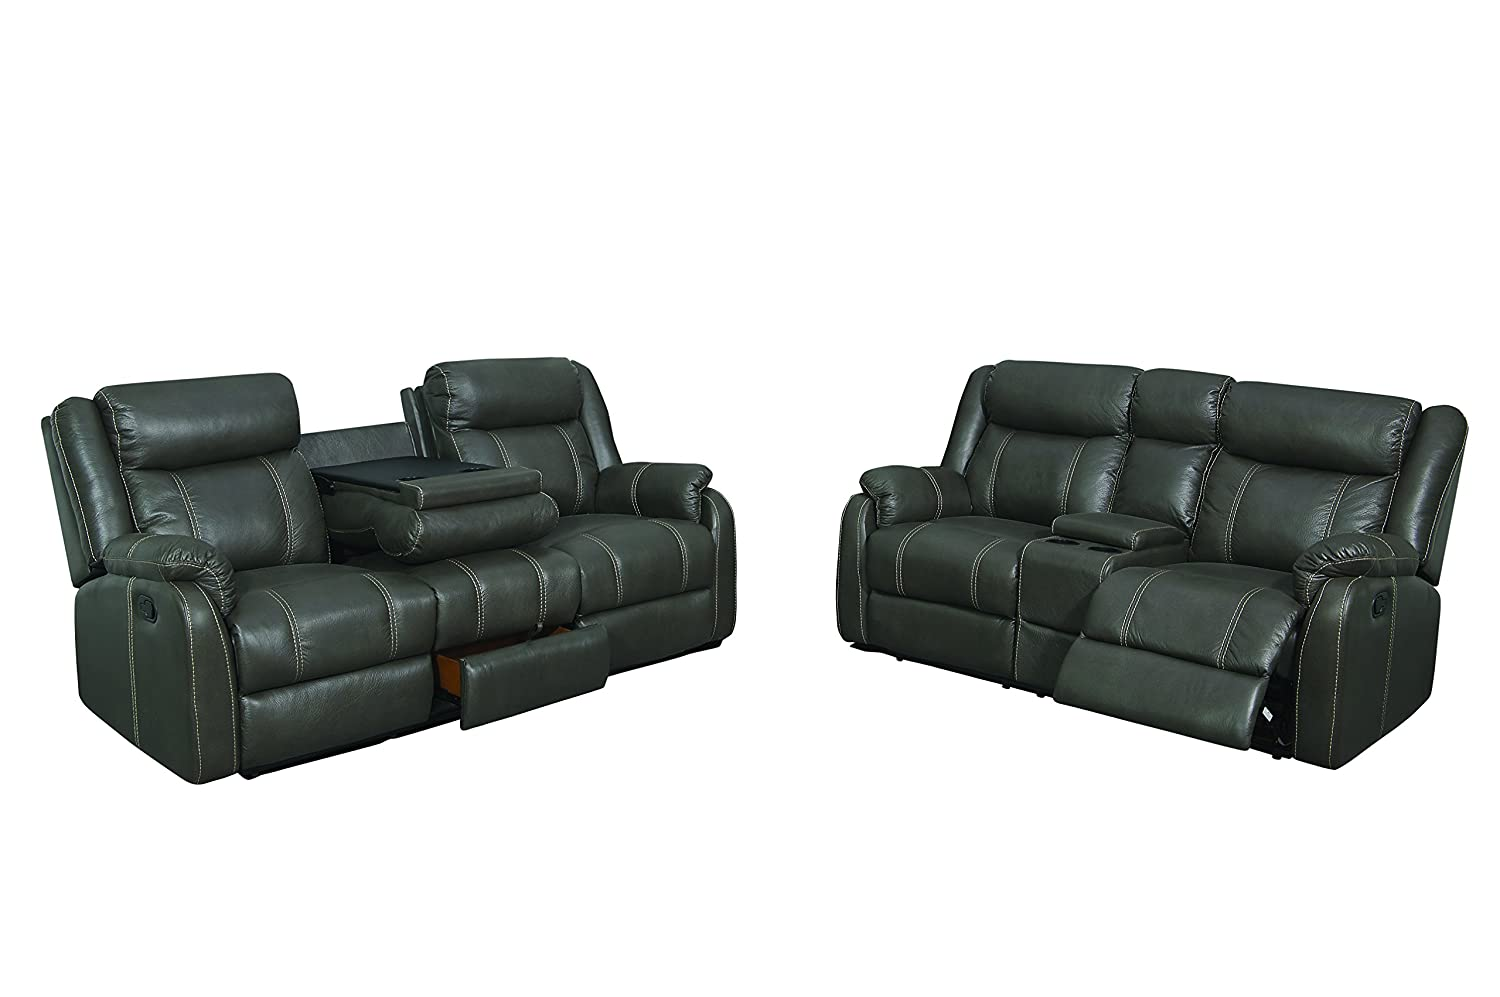 Amazon.com: Home Source U-64000-SL Sofa and Loveseat Set ...